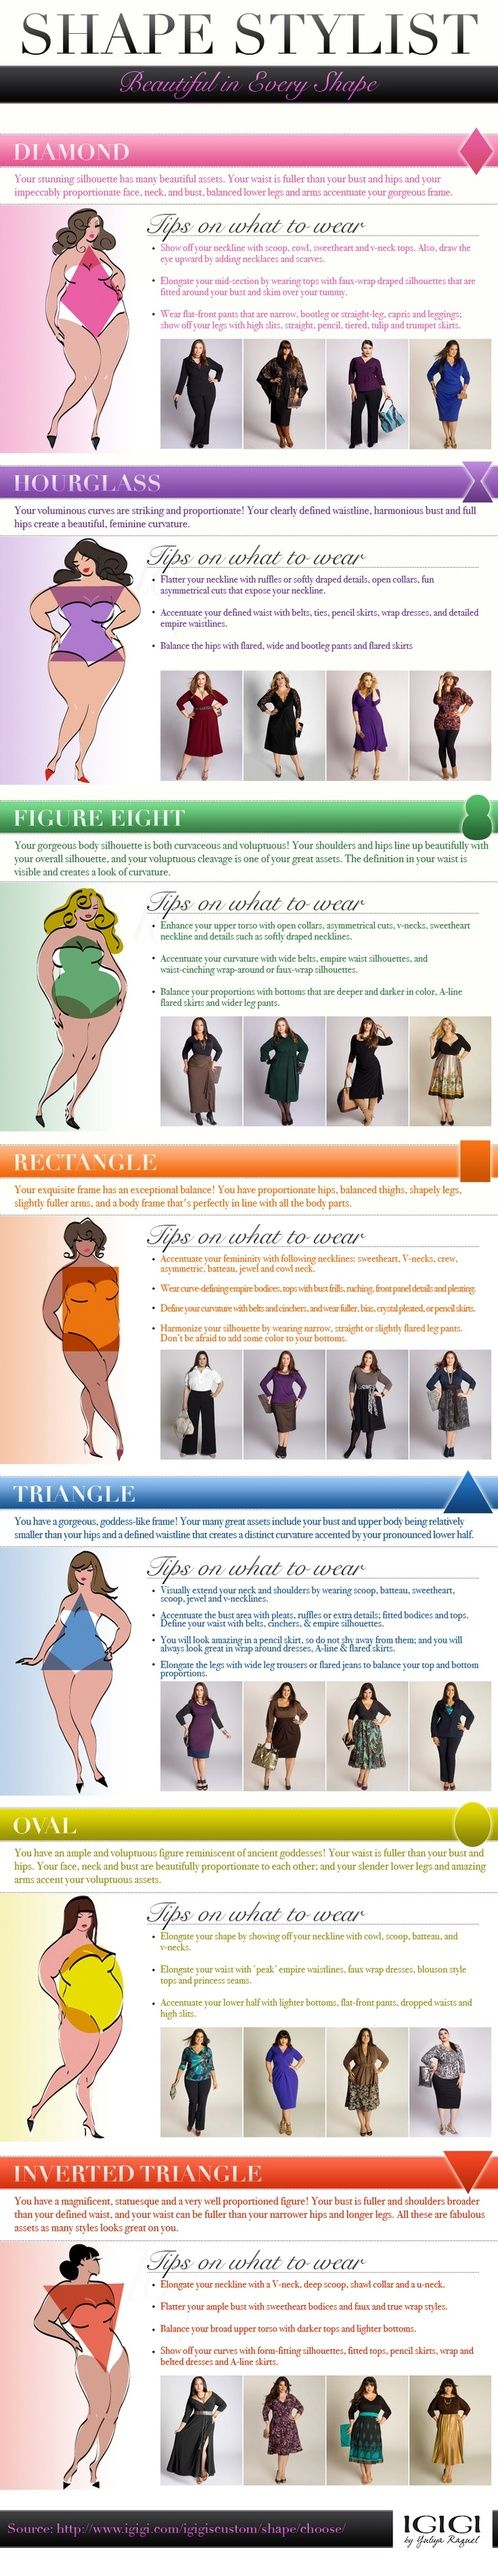 Plus Size Fashion Tips Dressing For Your Shape As A Plus Size Woman Plus Size Fashion Tips